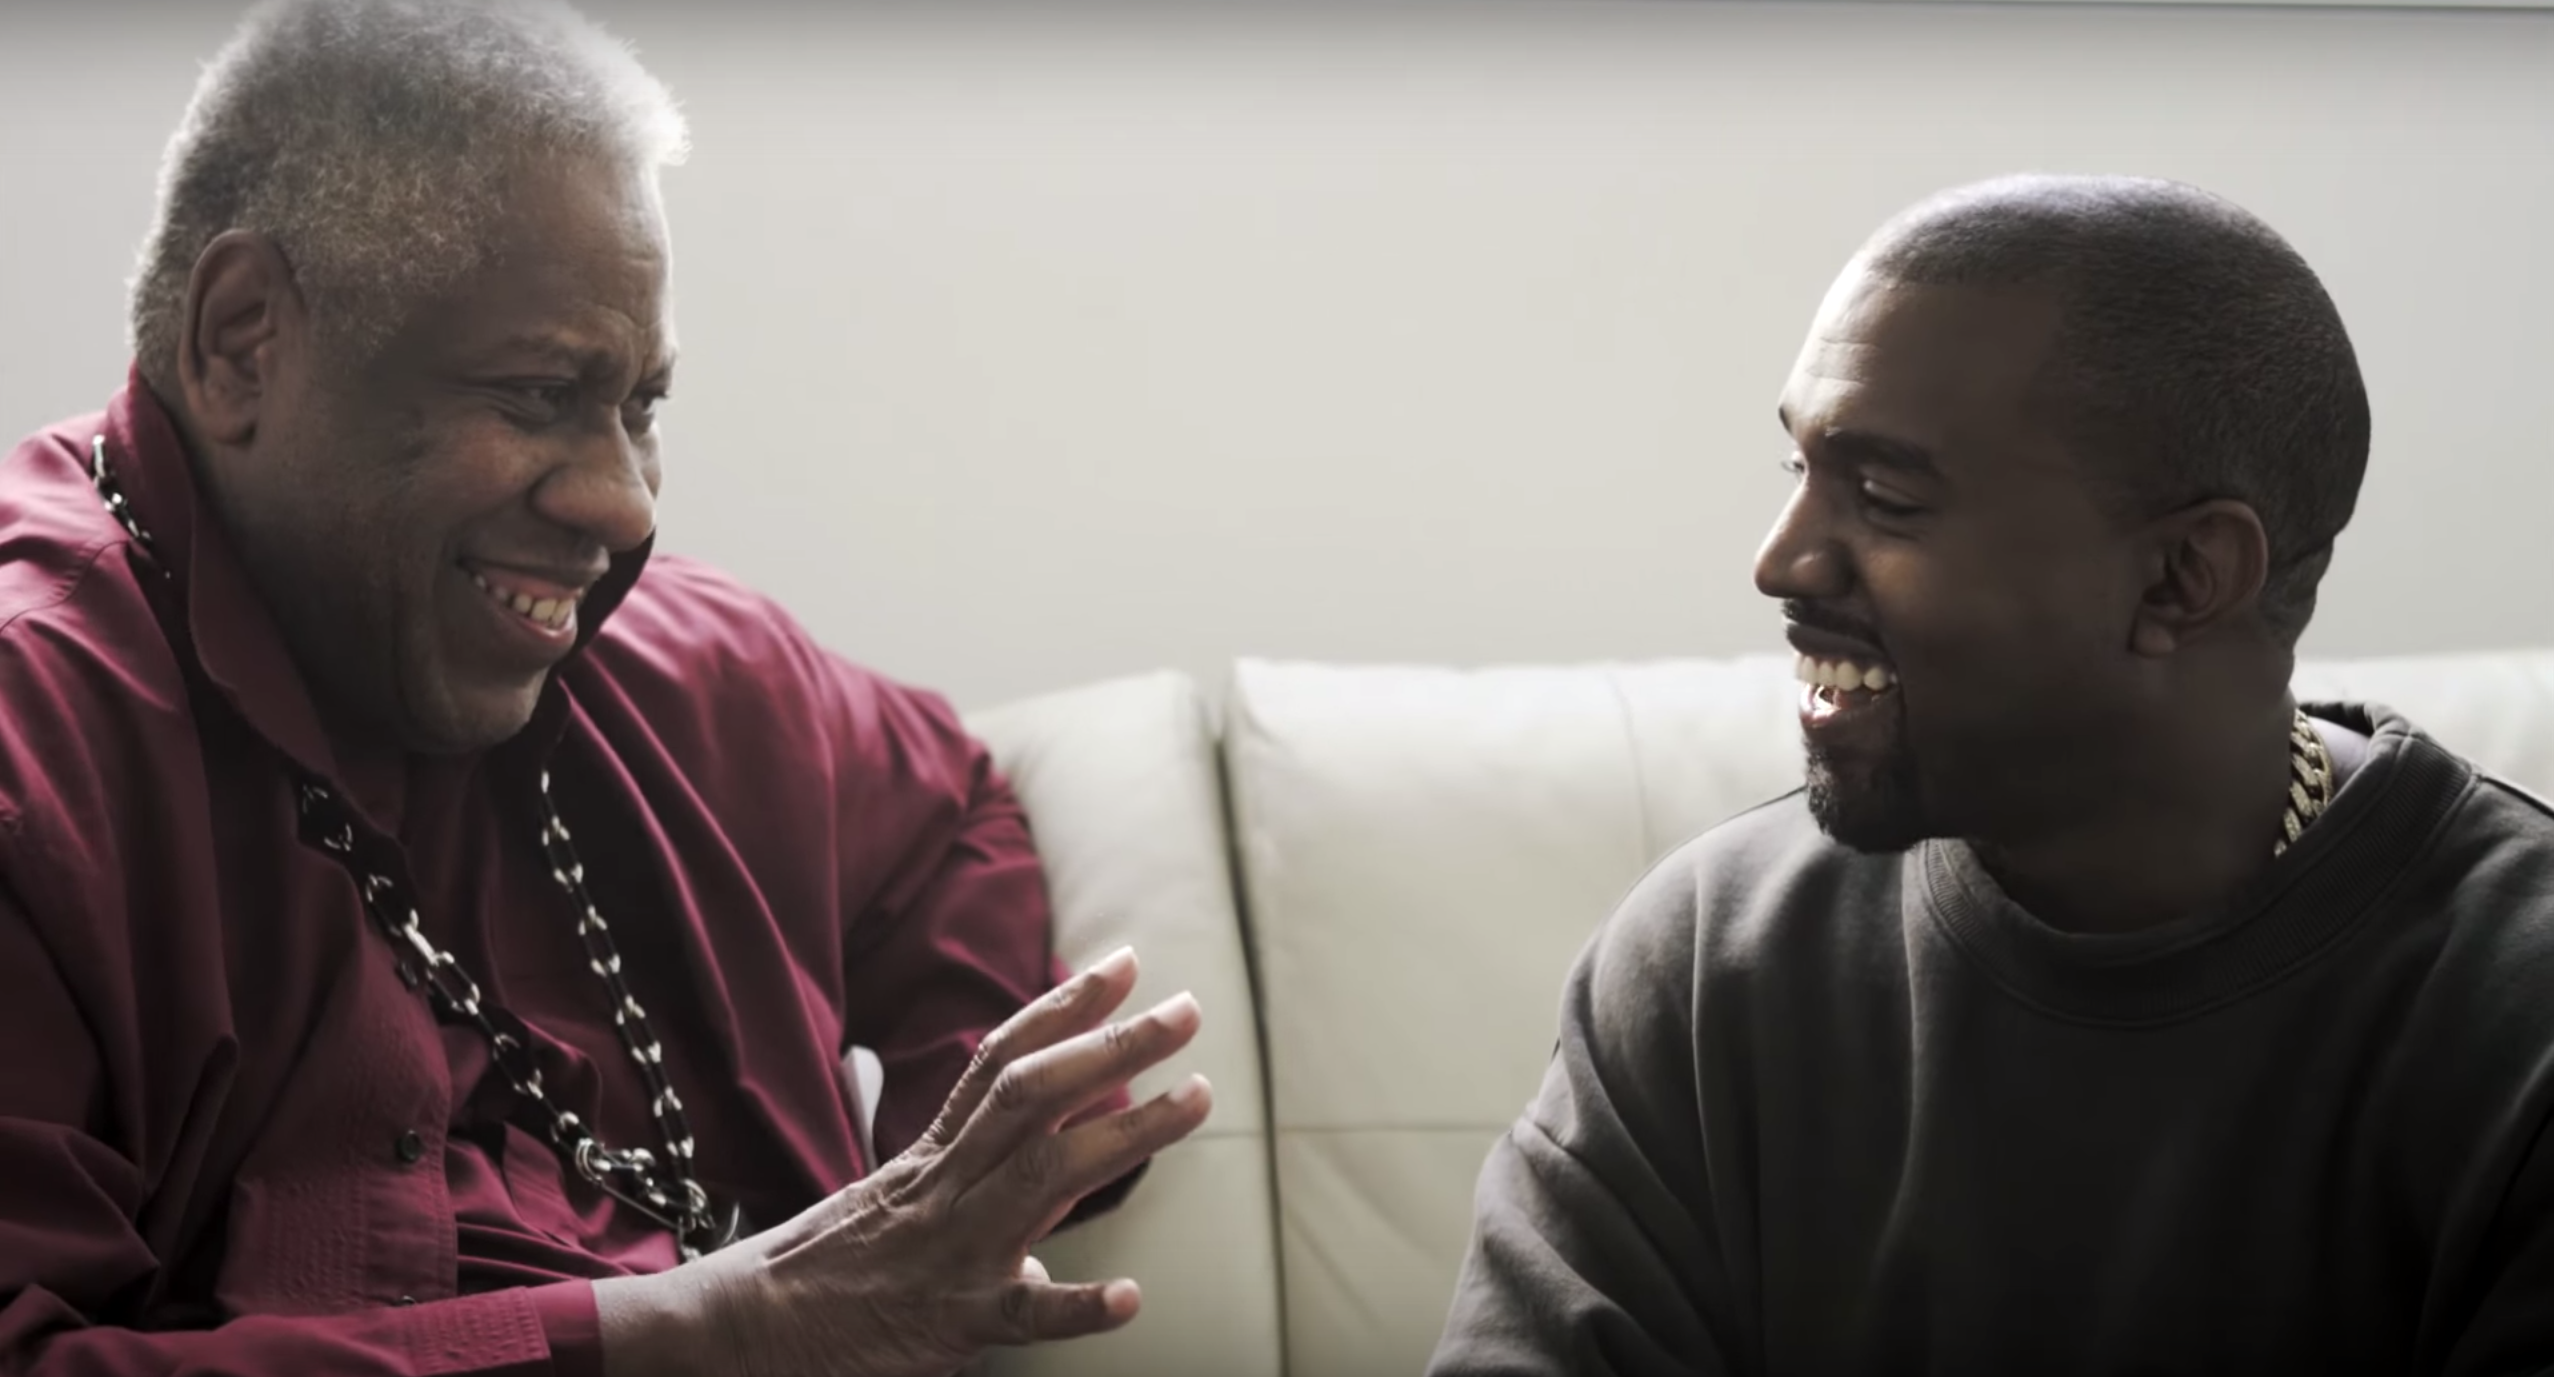 NYFW: Andre Leon Talley & Kanye West Open up About Yeezy